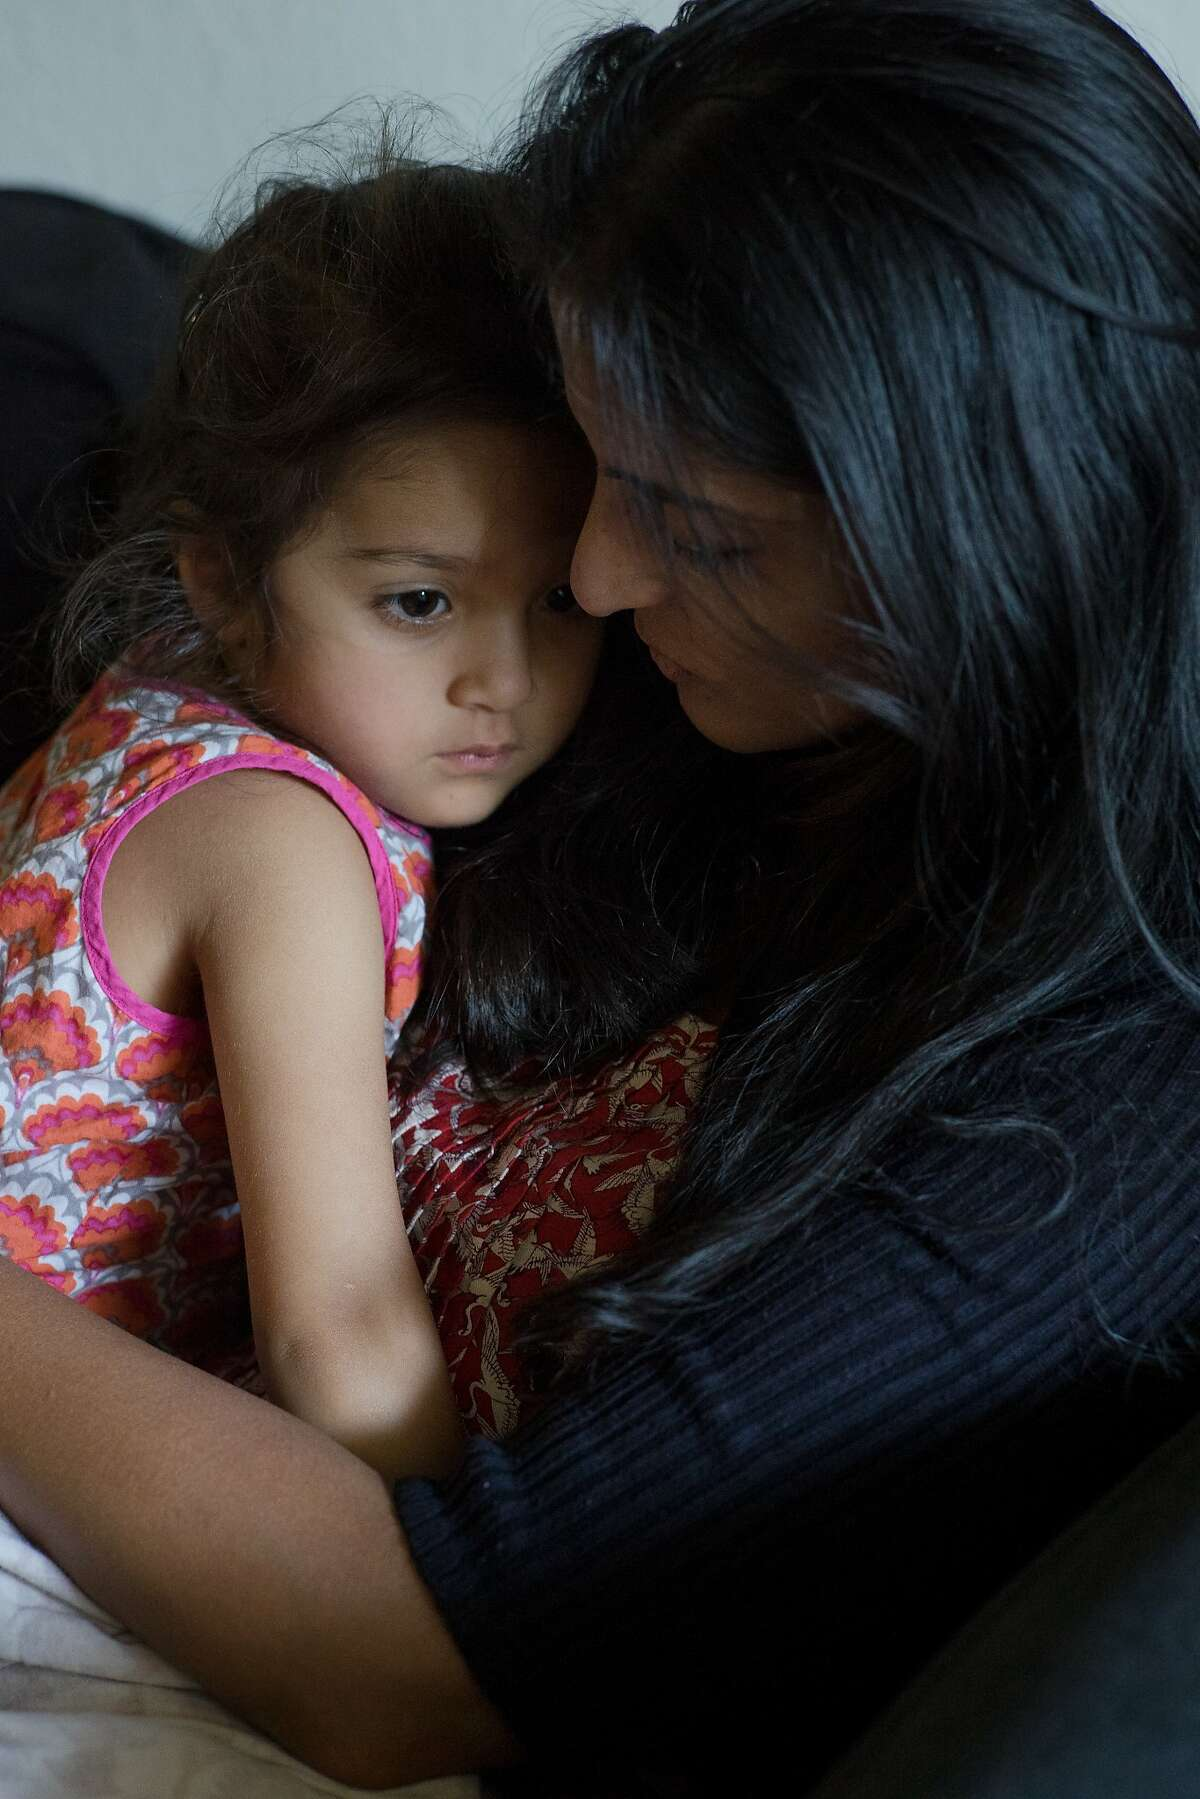 Karishma Chawla comforts her daughter Naisha at her home in San Jose, Calif. on Friday, Aug. 18, 2017. For decades spouses of H-1B visa holders could not work, until two years ago when President Obama issued a work authorization. But now his authorization is under threat by the Trump administration who is trying to rid these visa holders from the ability to work.